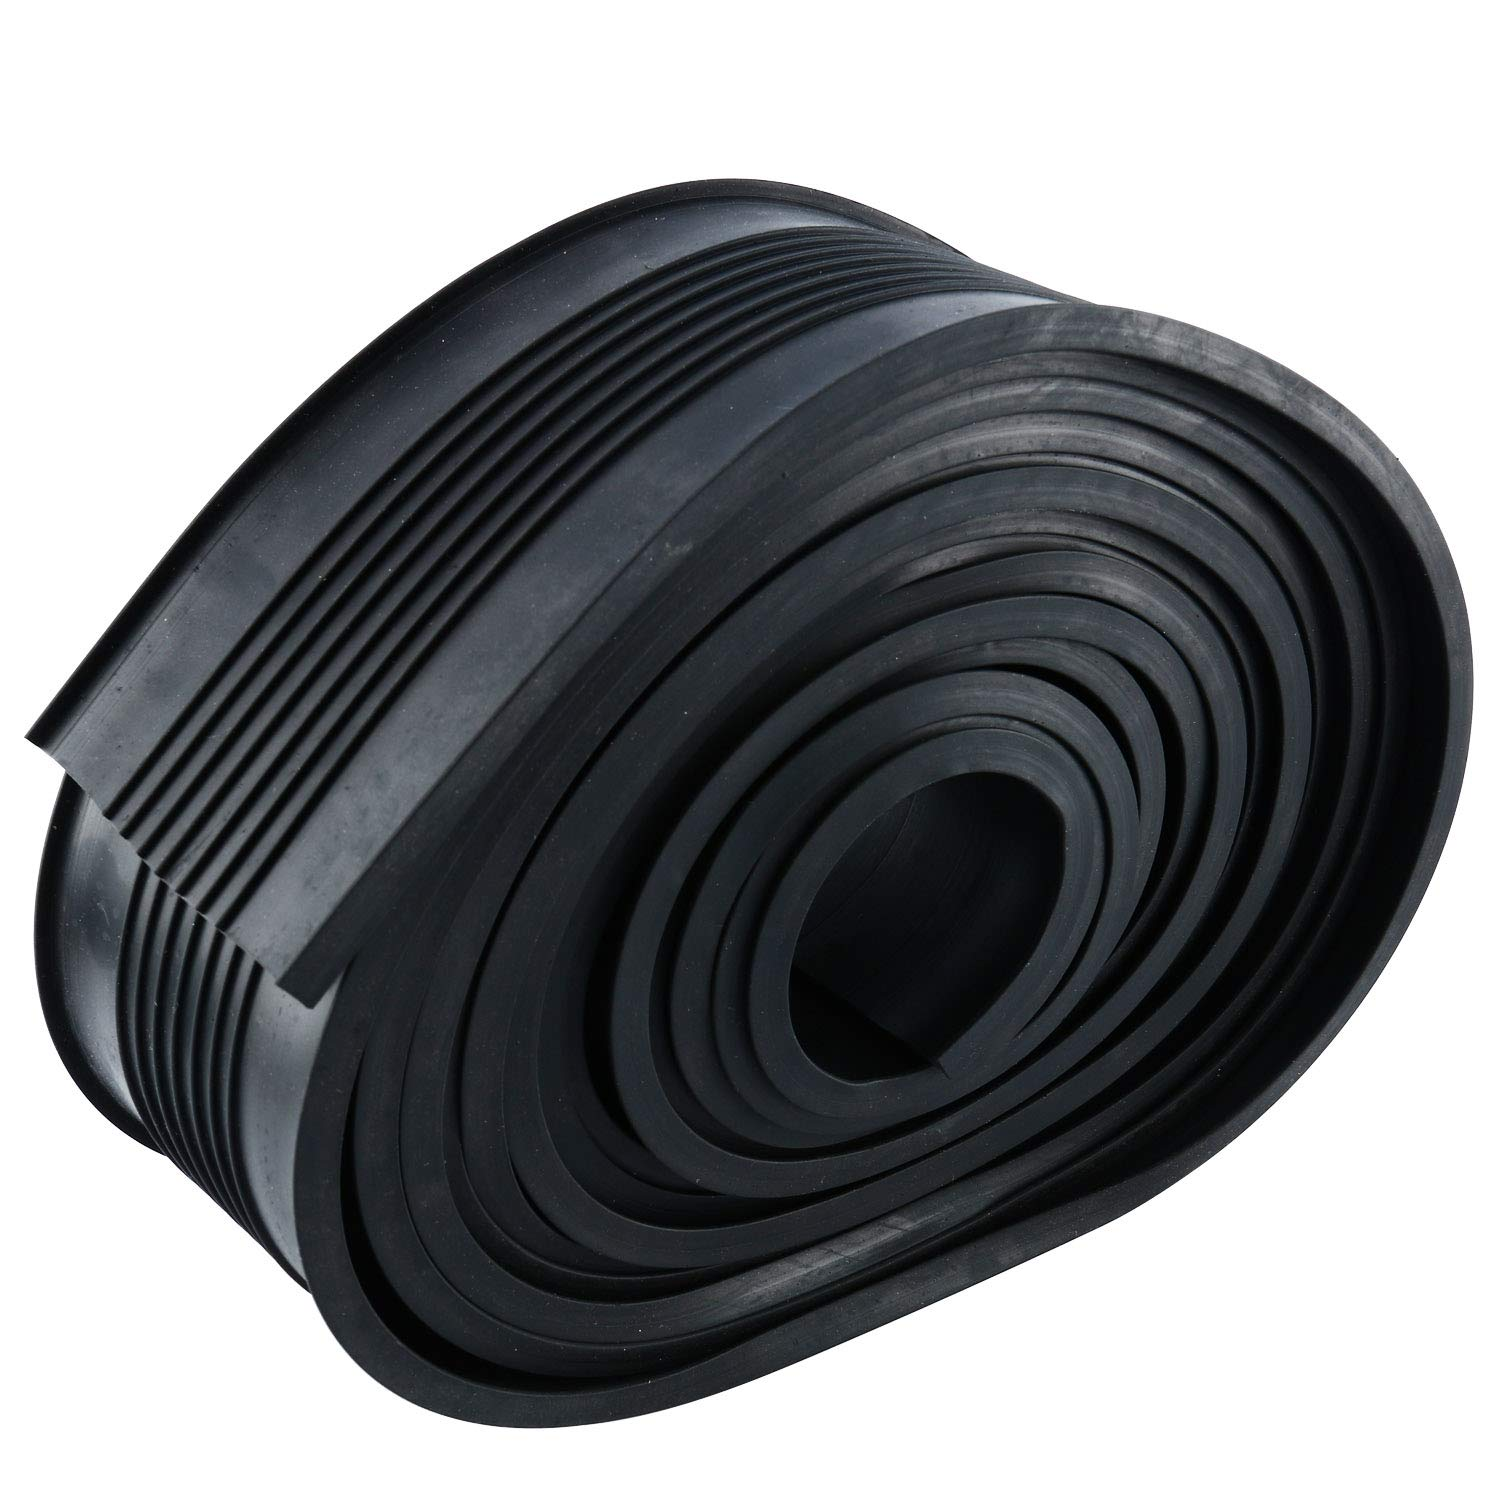 Homend Garage Door Bottom Weather Stripping Rubber Seal Strip Replacement, 5/16'' T Ends, 3 3/4'' Width X 20 Feet Lenth (Black) by Homend (Image #7)